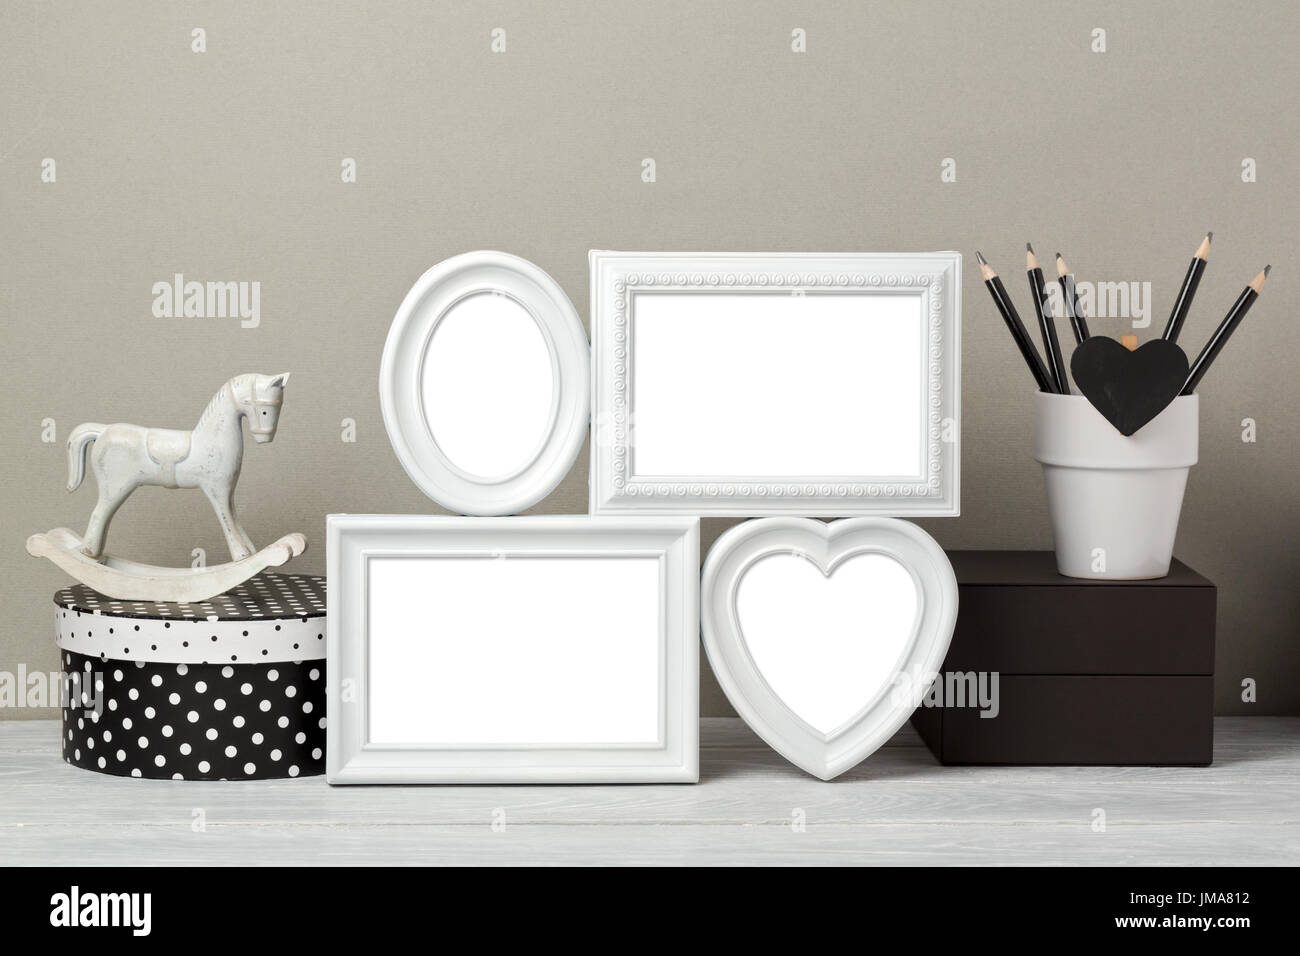 Frames mock up with rocking horse toy and pencils. Nursery or kids room interior background - Stock Image